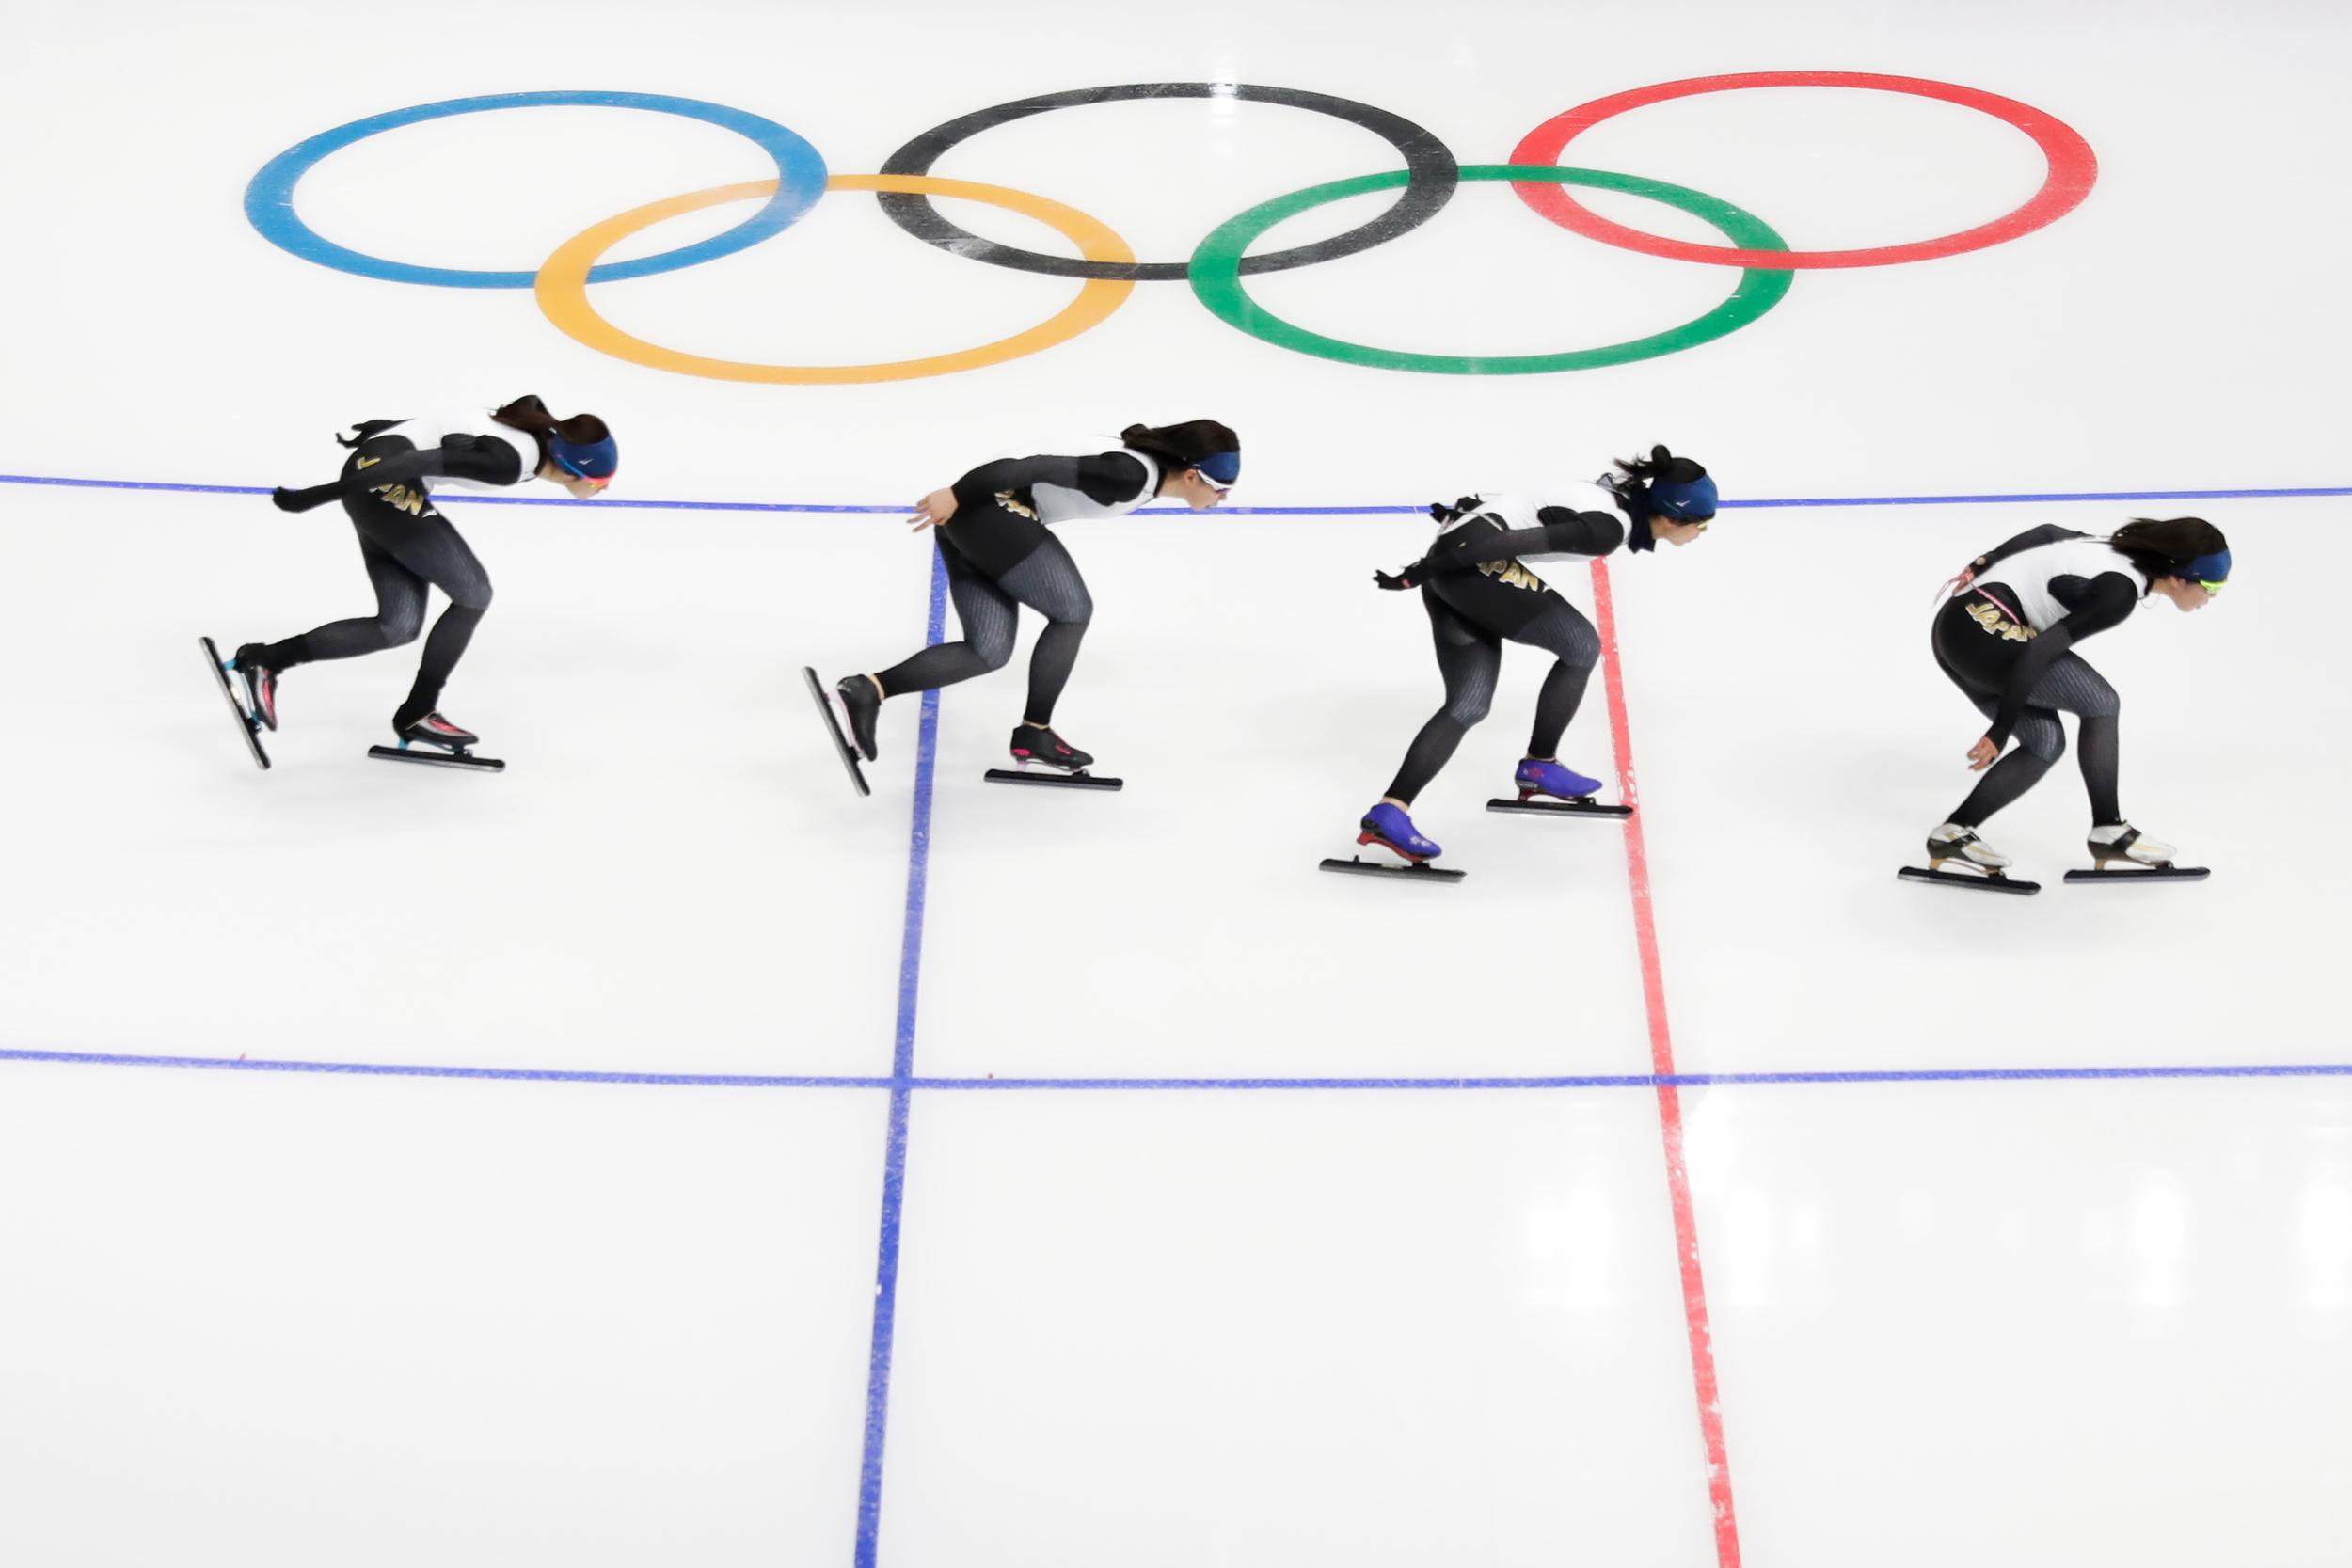 Japan speed skaters practice at the Gangneung Oval during a training session prior to the 2018 Winter Olympics in Gangneung, South Korea, Monday, Feb. 5, 2018. (AP Photo/Felipe Dana)